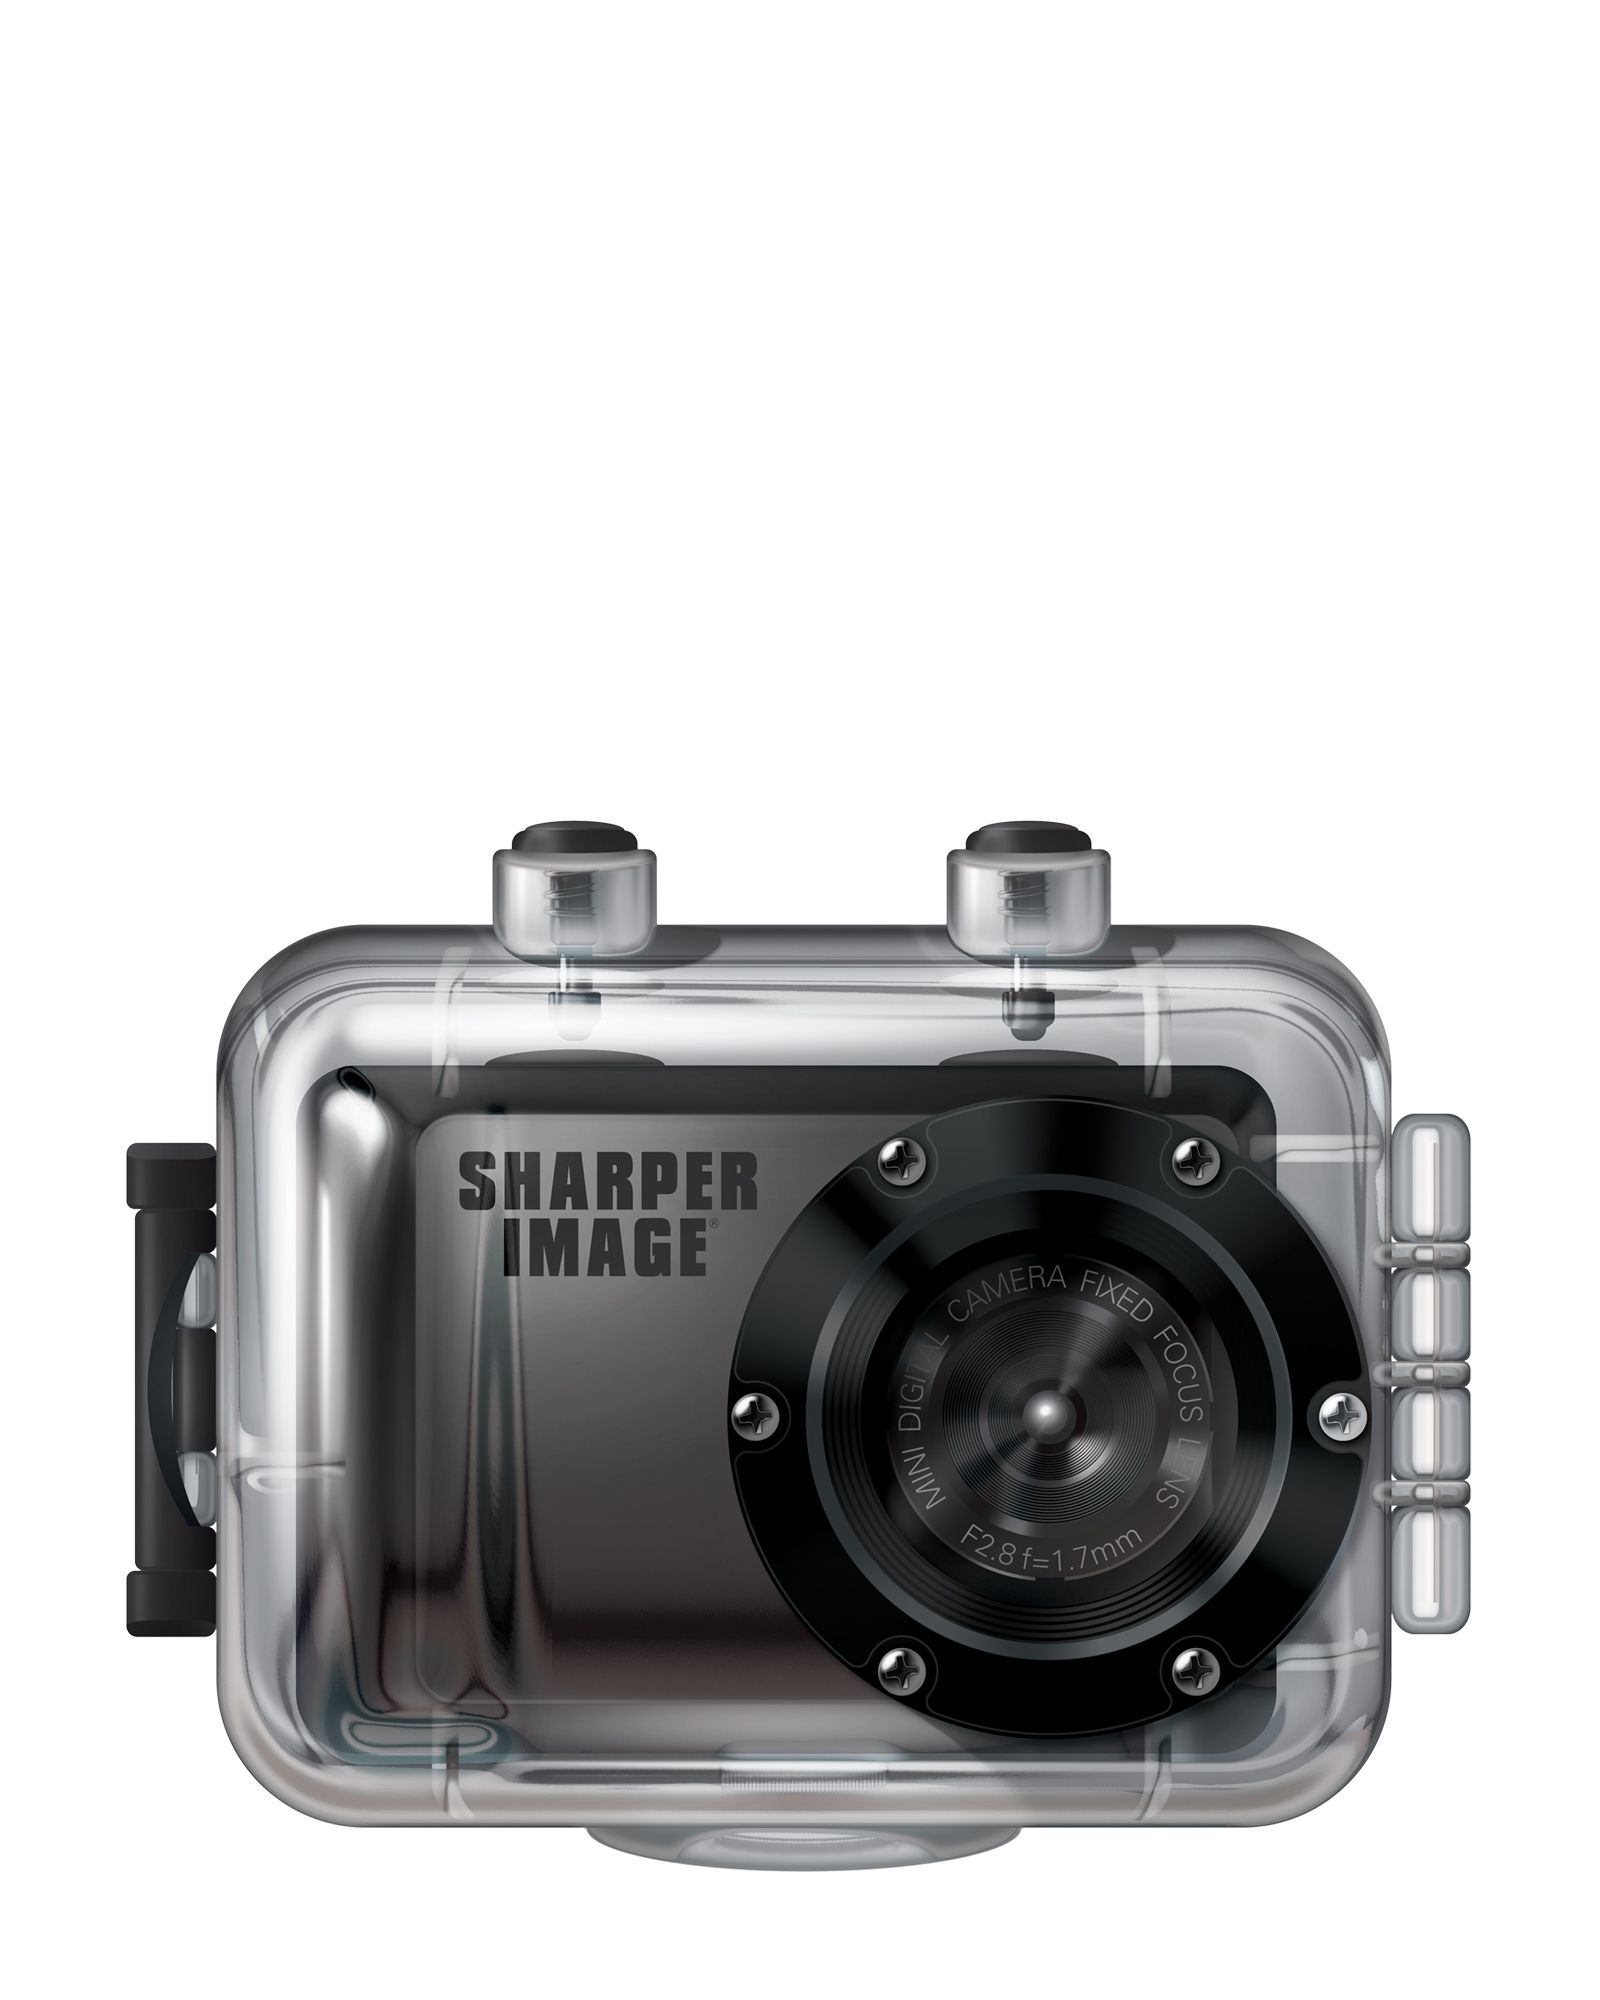 Sharper Image Black Hd Mini Action Camera Electronics Polyvore